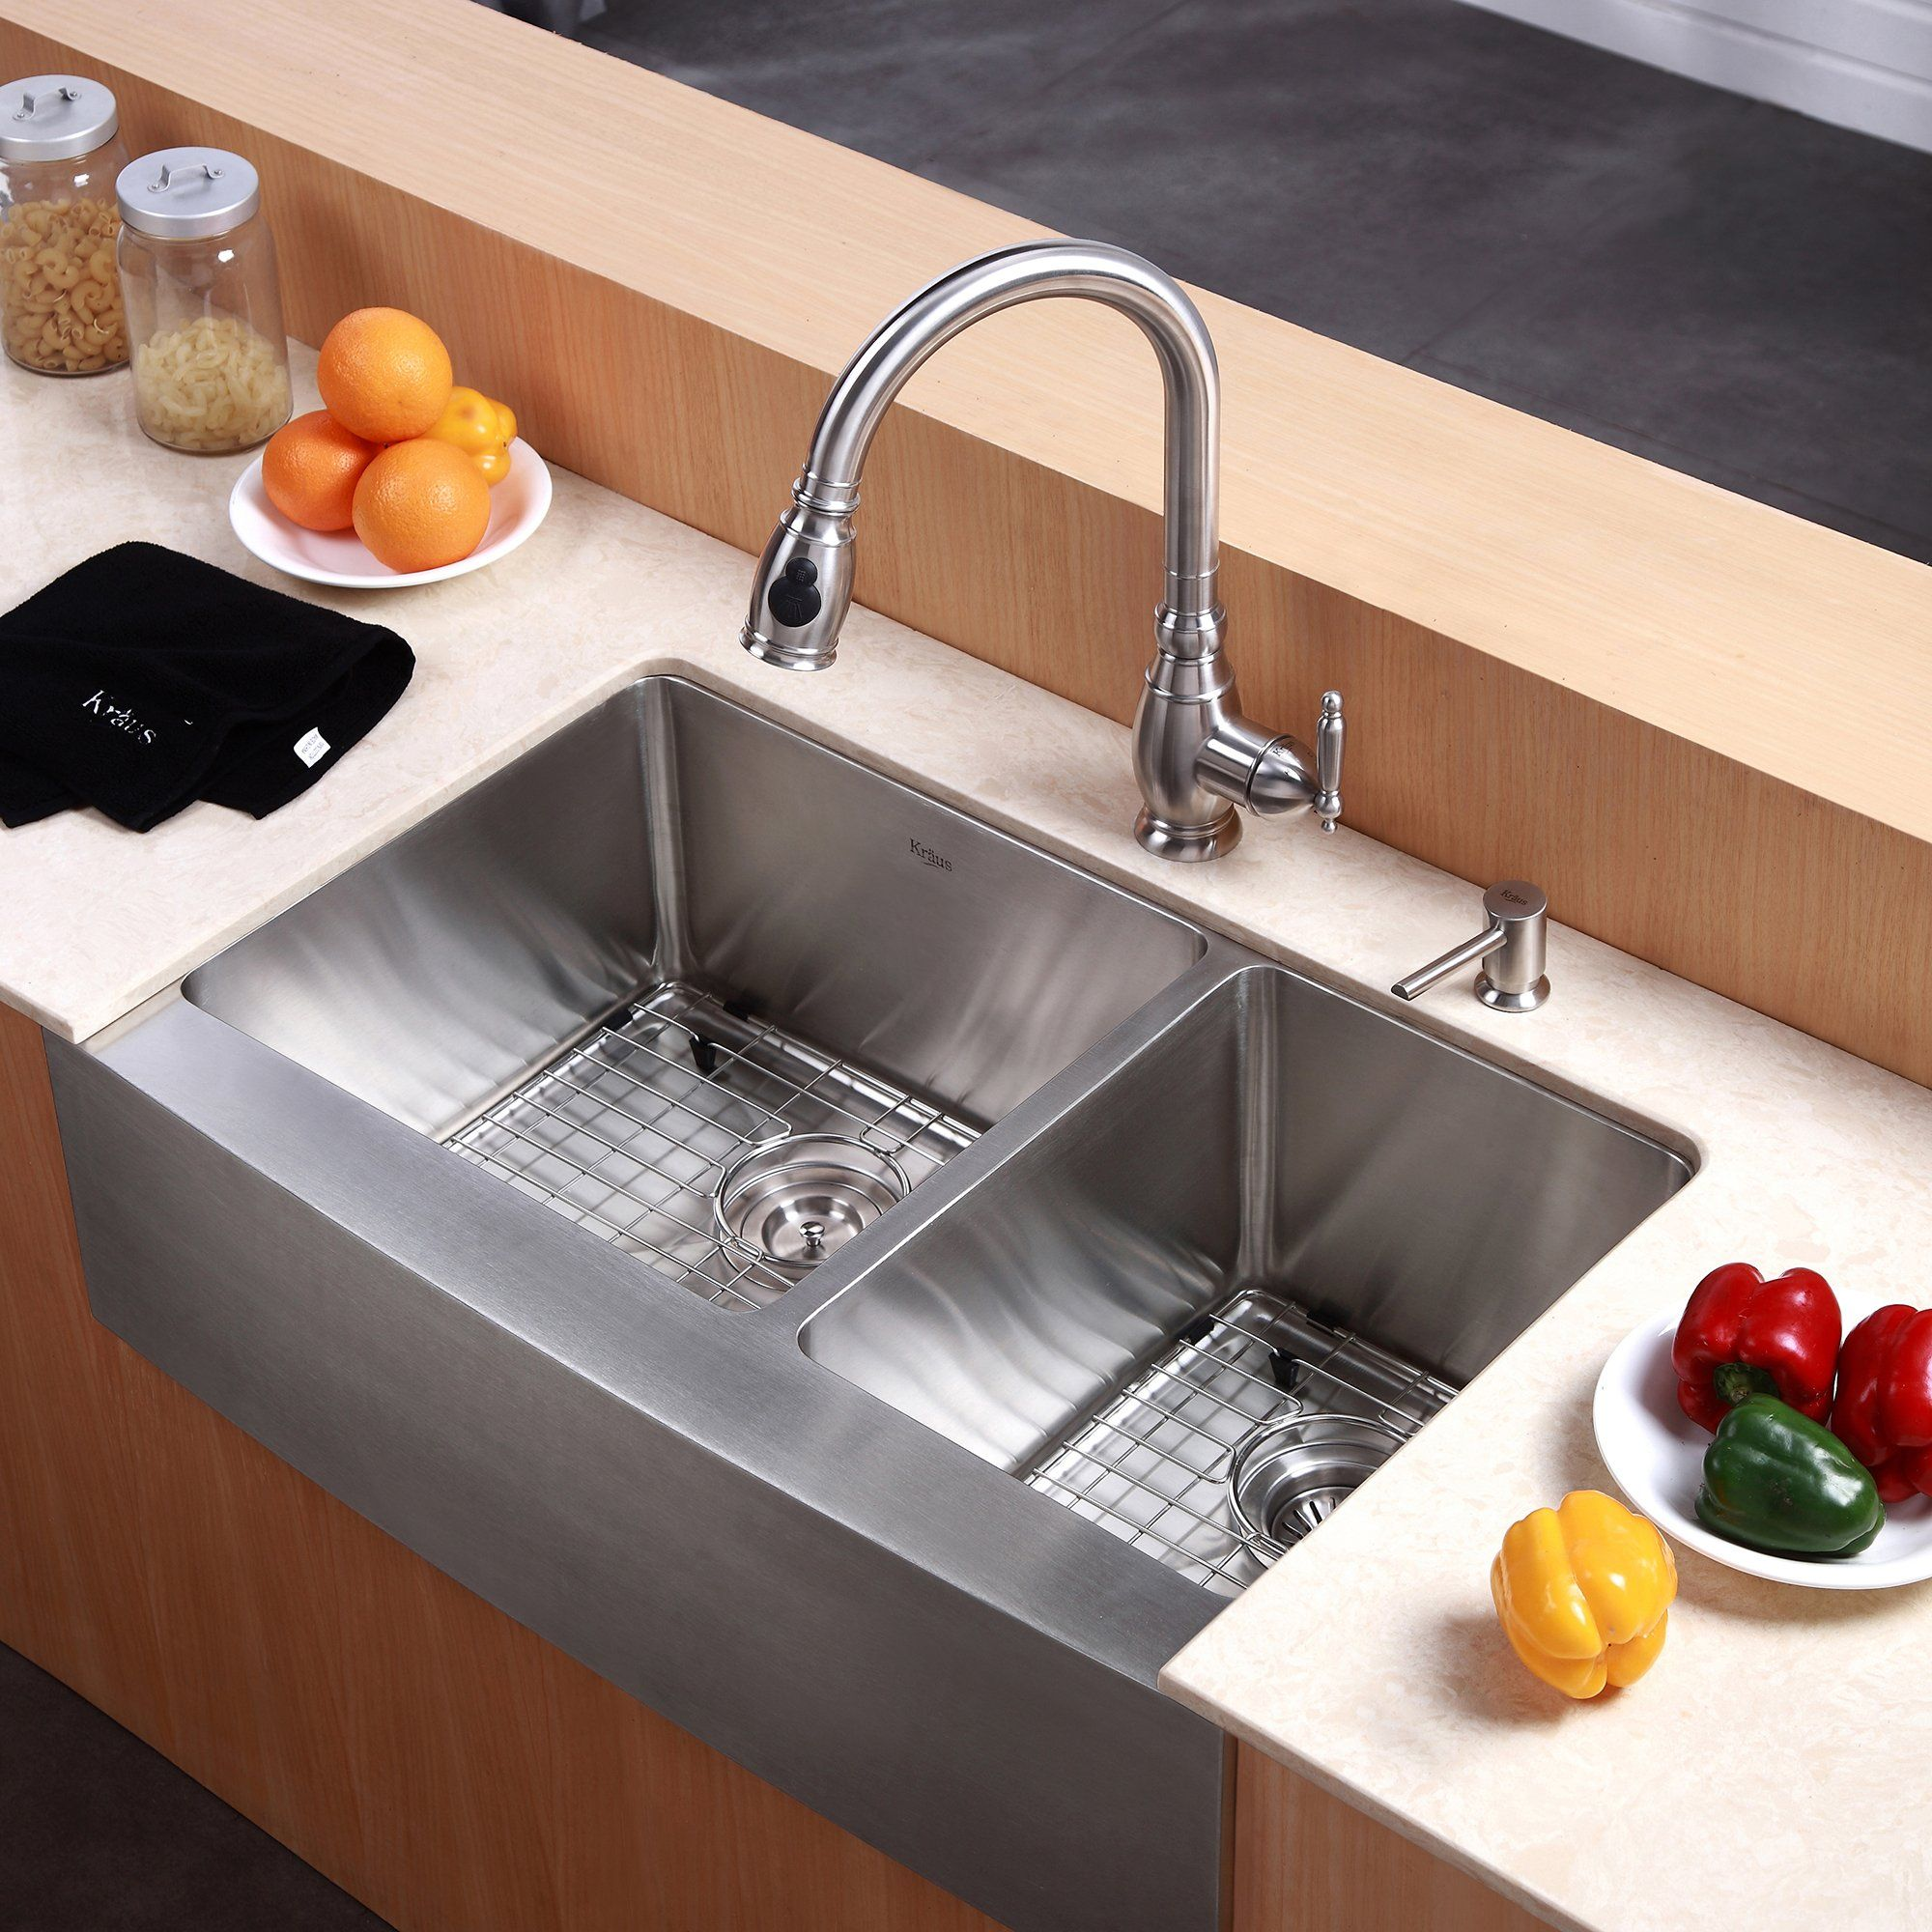 Kraus Khf203 33 33 Inch Farmhouse Apron 60 40 Double Bowl 16 Gauge Stainless Steel Kitc Stainless Steel Farmhouse Sink Kitchen Decor Modern Kitchen Sink Design